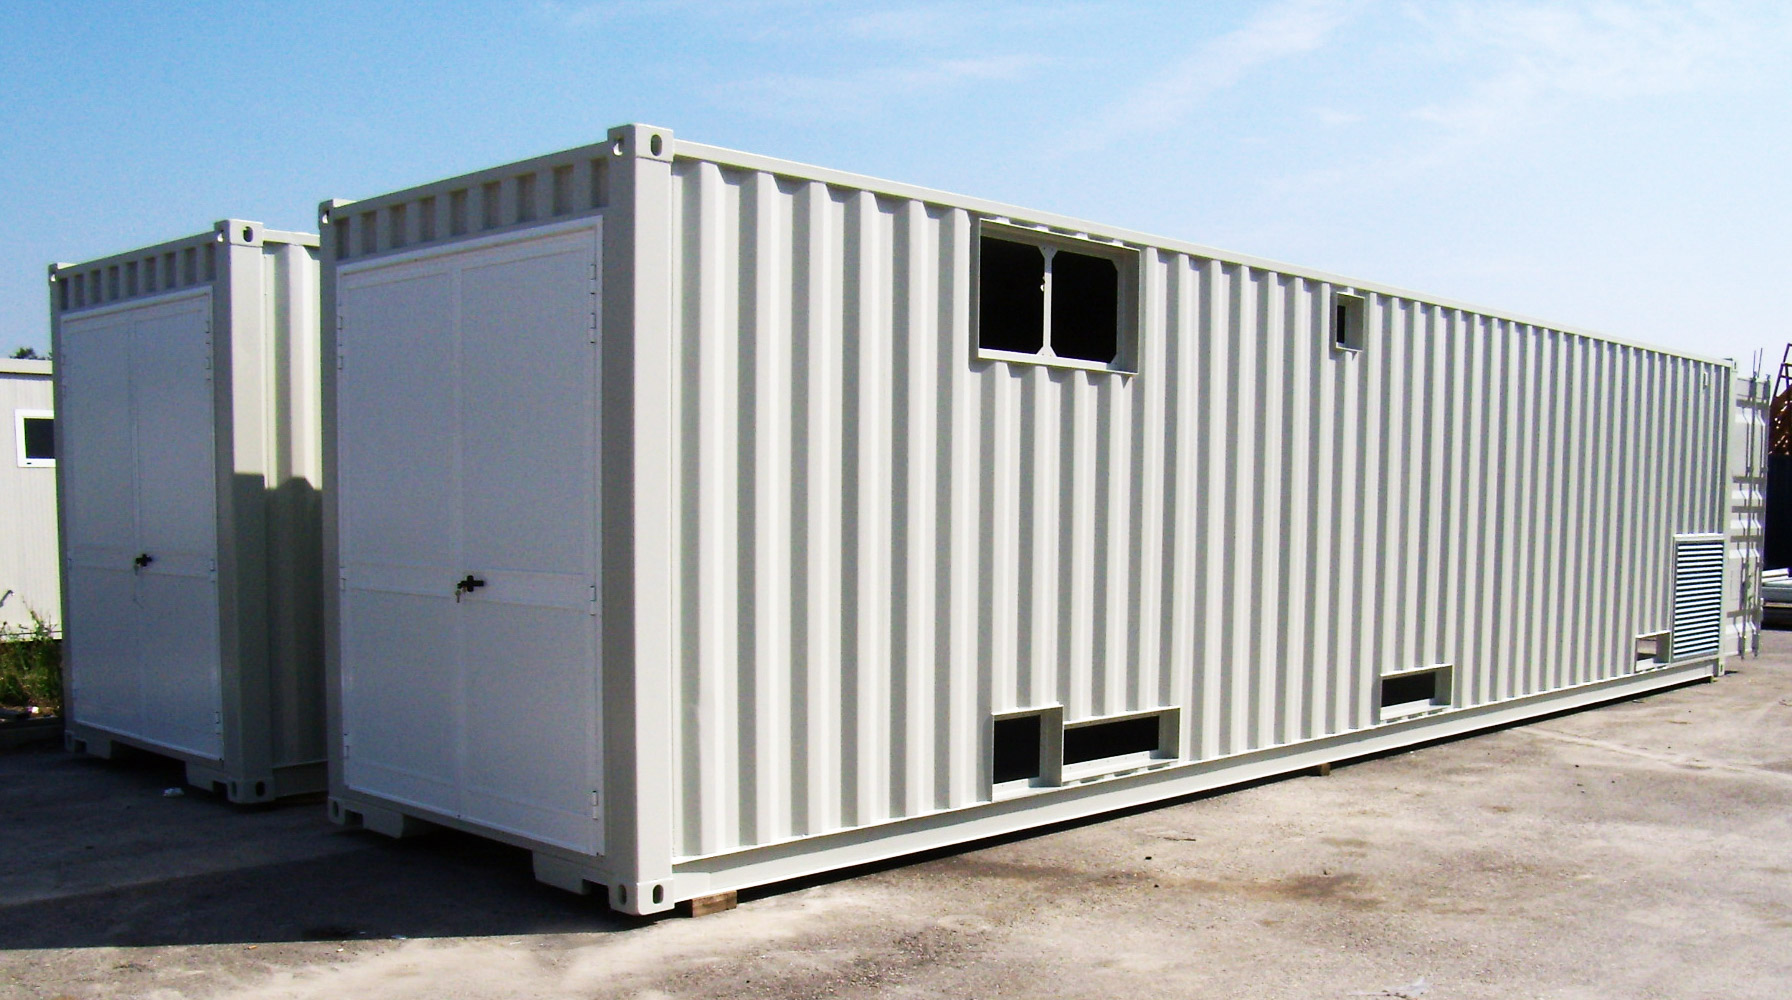 Modular and Expandable Metal Prefabricated